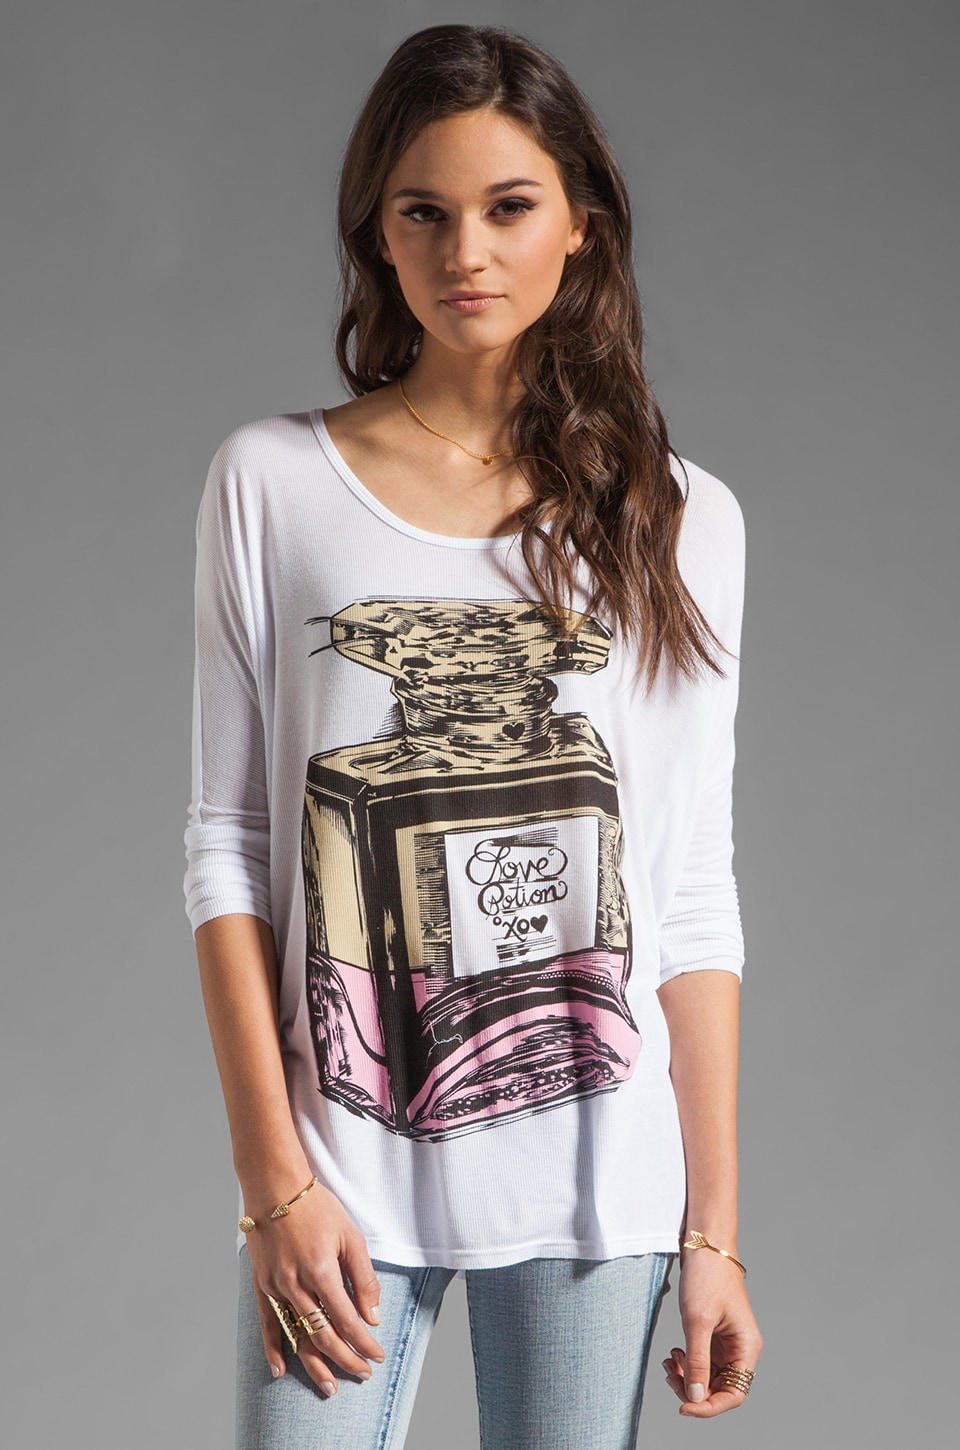 Lauren Moshi Tylie Color Love Potion Draped Tee in White